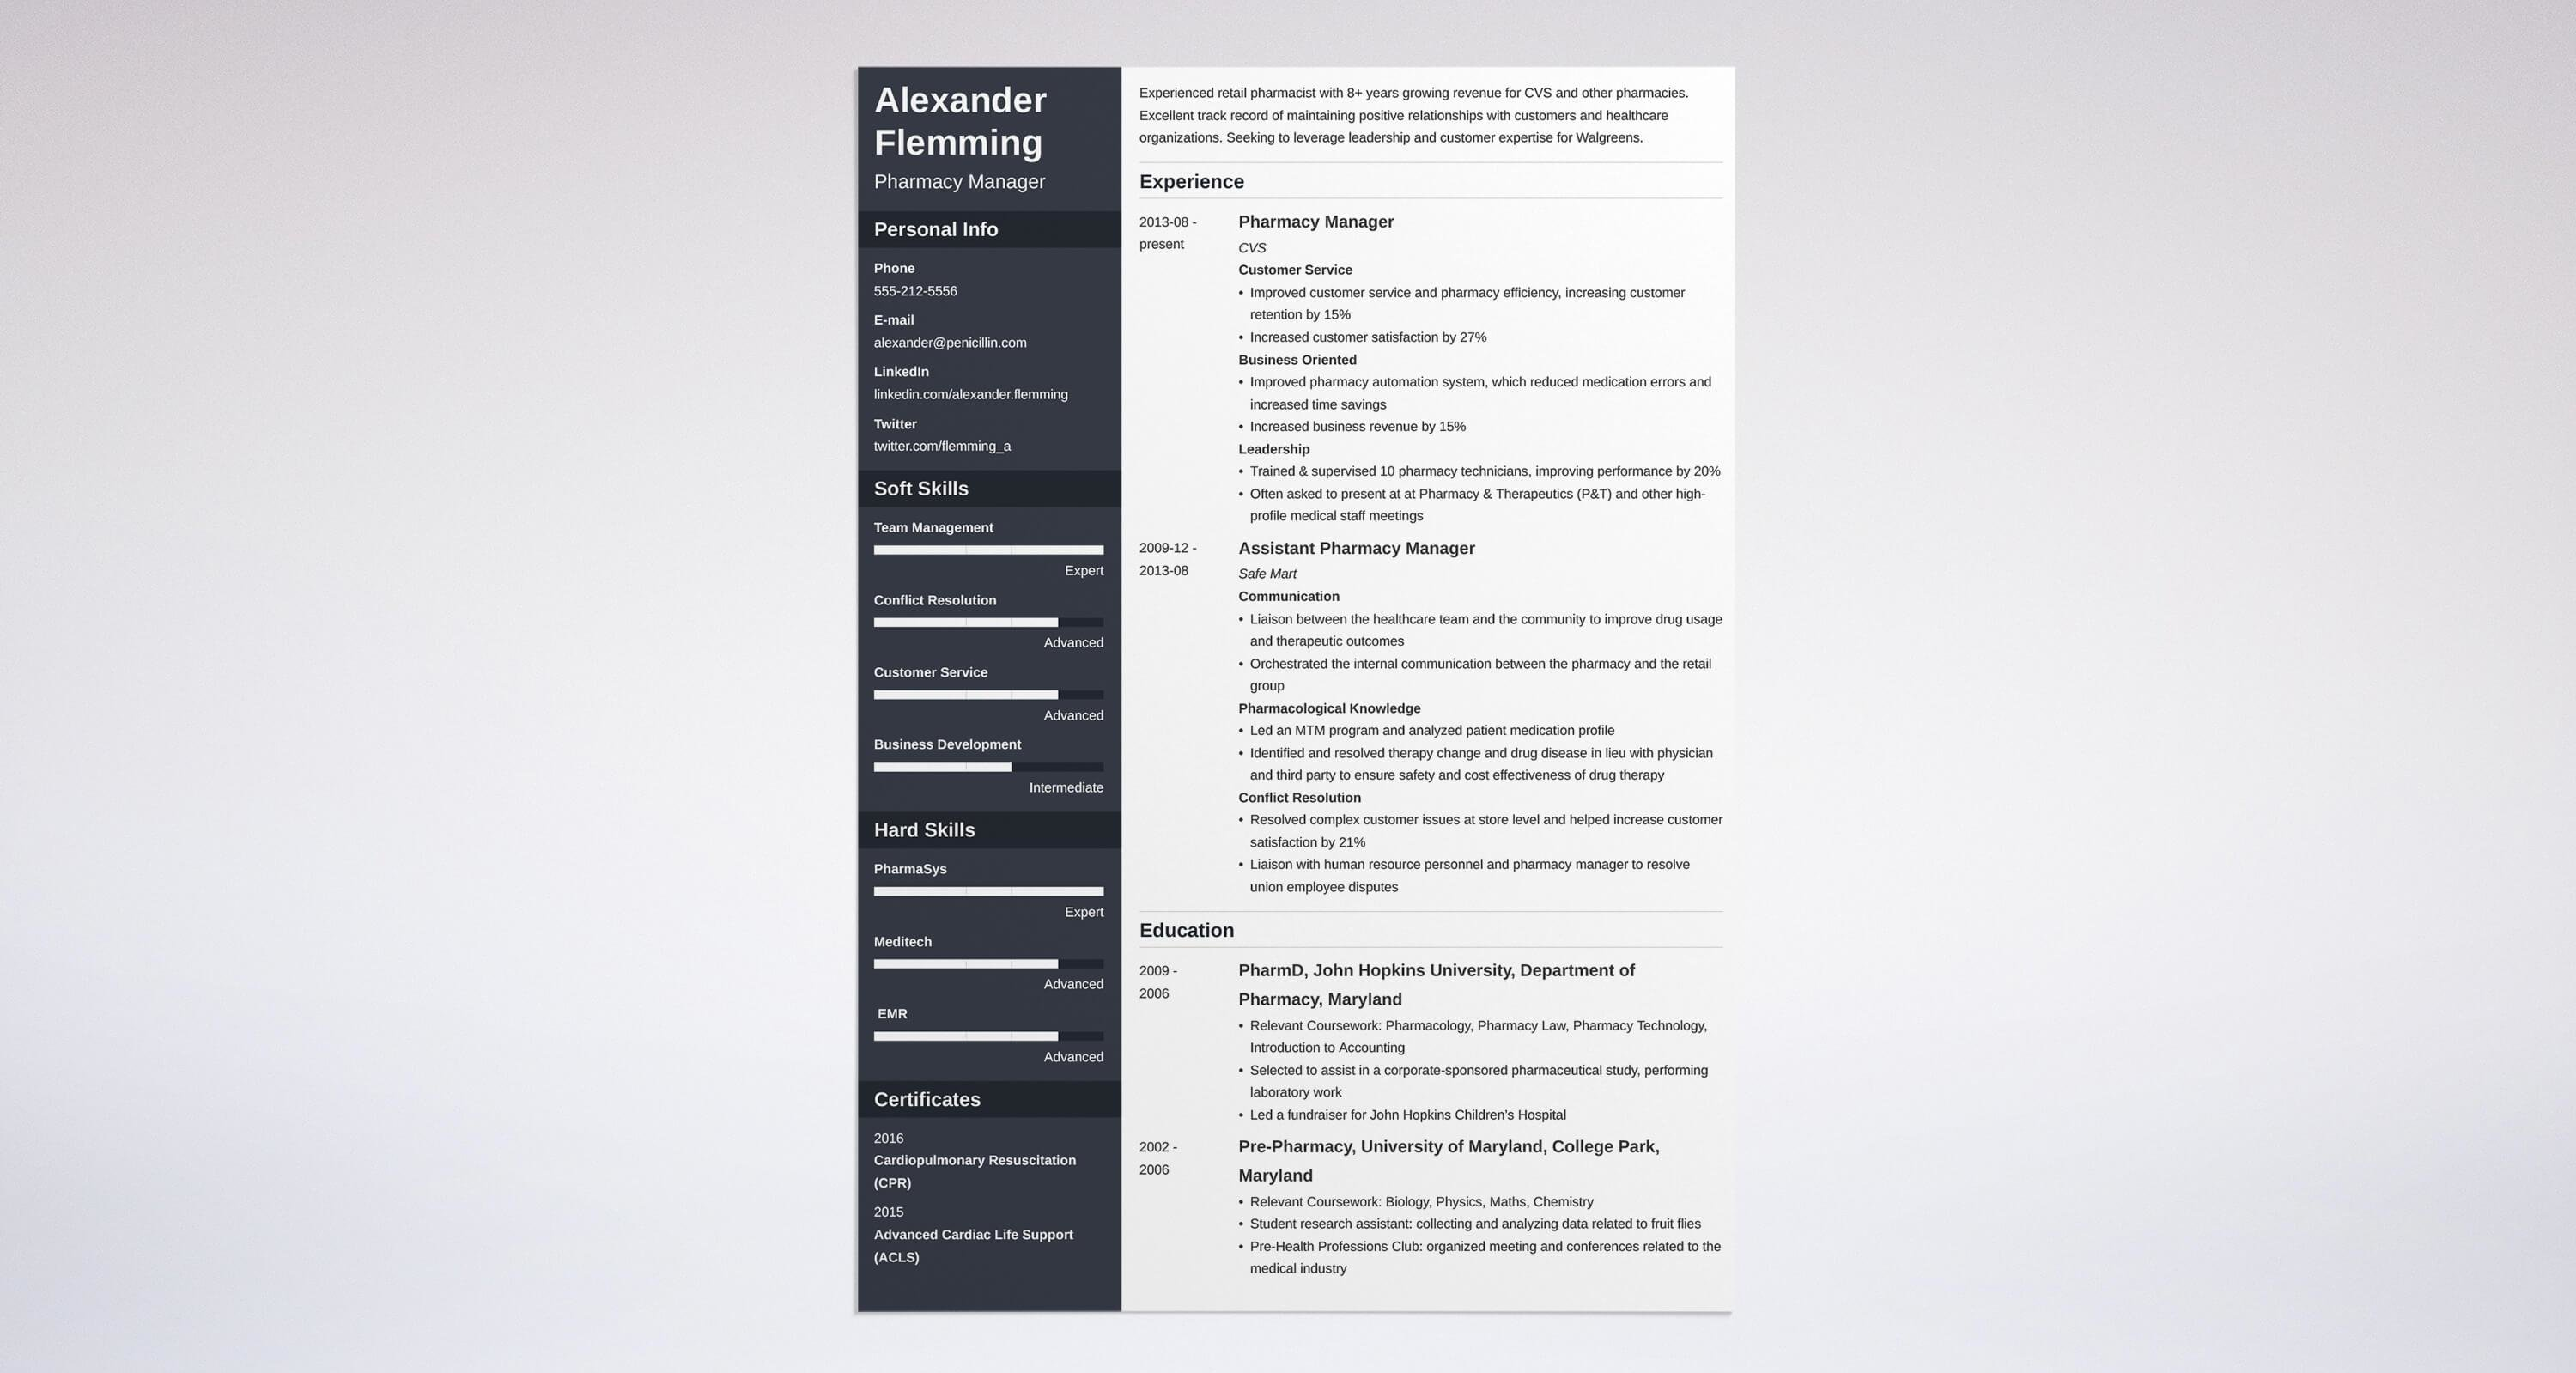 Pharmacist Resume Examples Pharmacist Resume Sample & Complete Guide 20 Examples